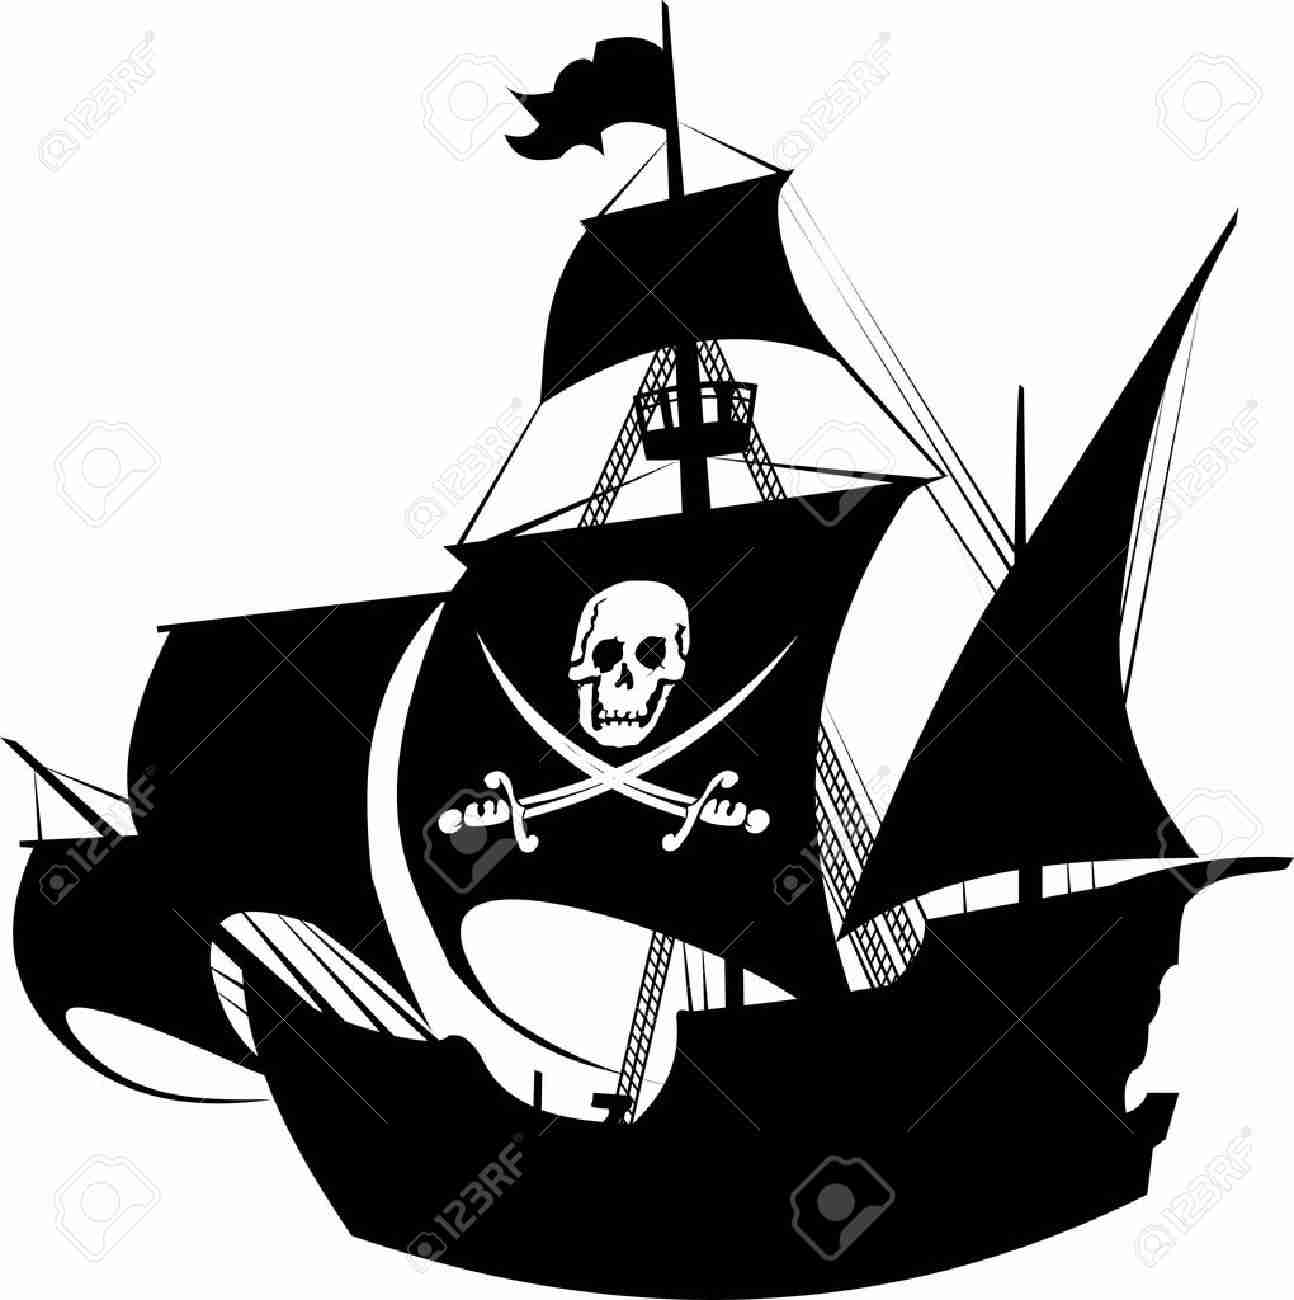 silhouette pirate at getdrawings com free for personal use rh getdrawings com Original Pirate Flags Pirate Party Clip Art